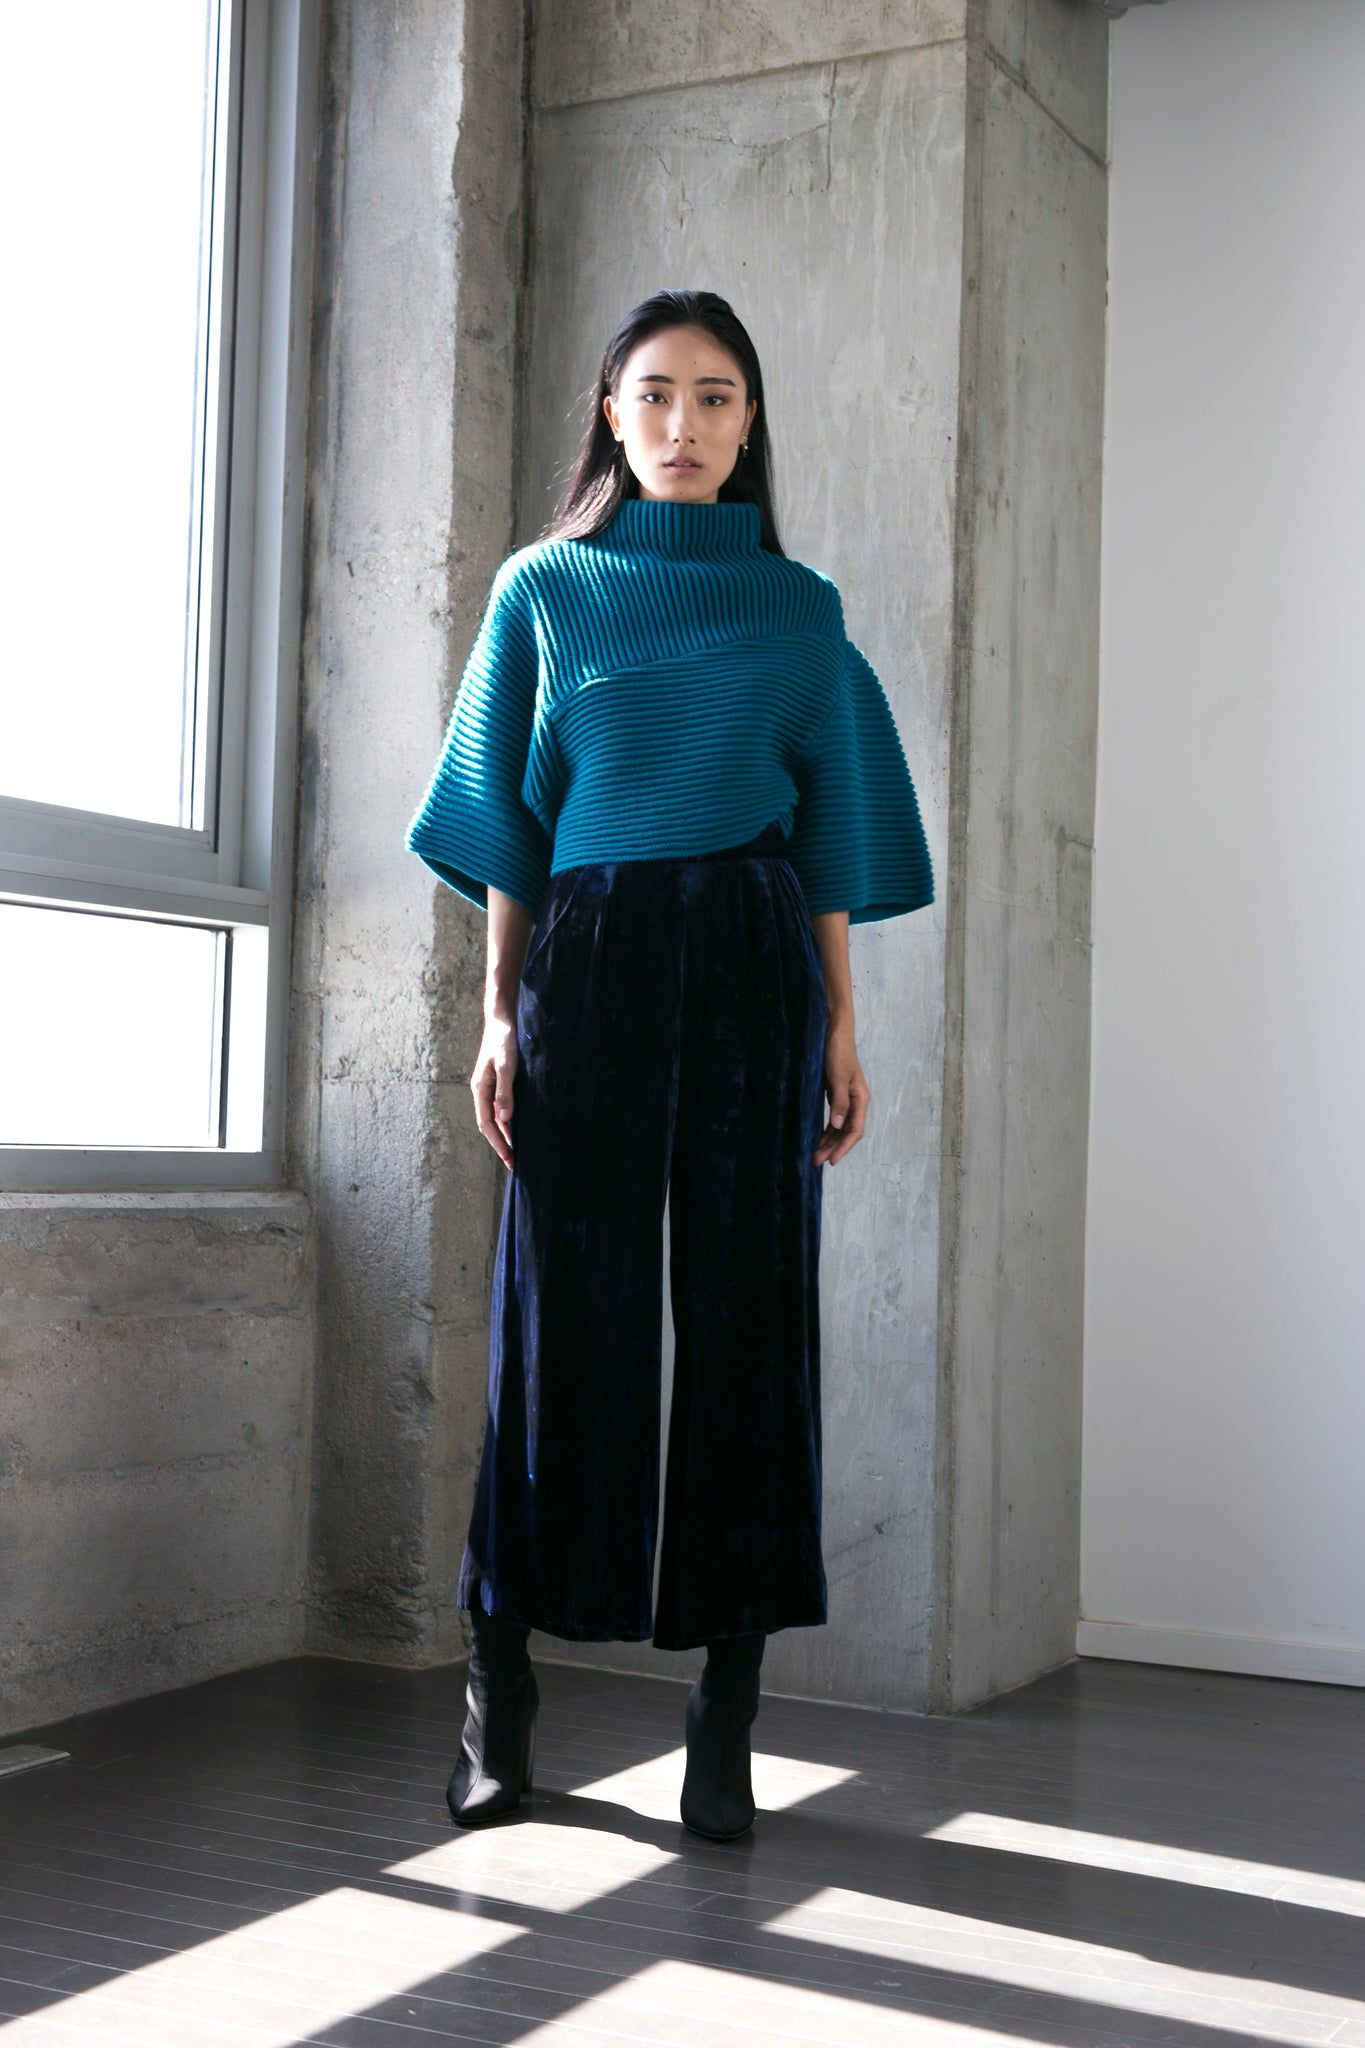 Nicole Sweater in Teal